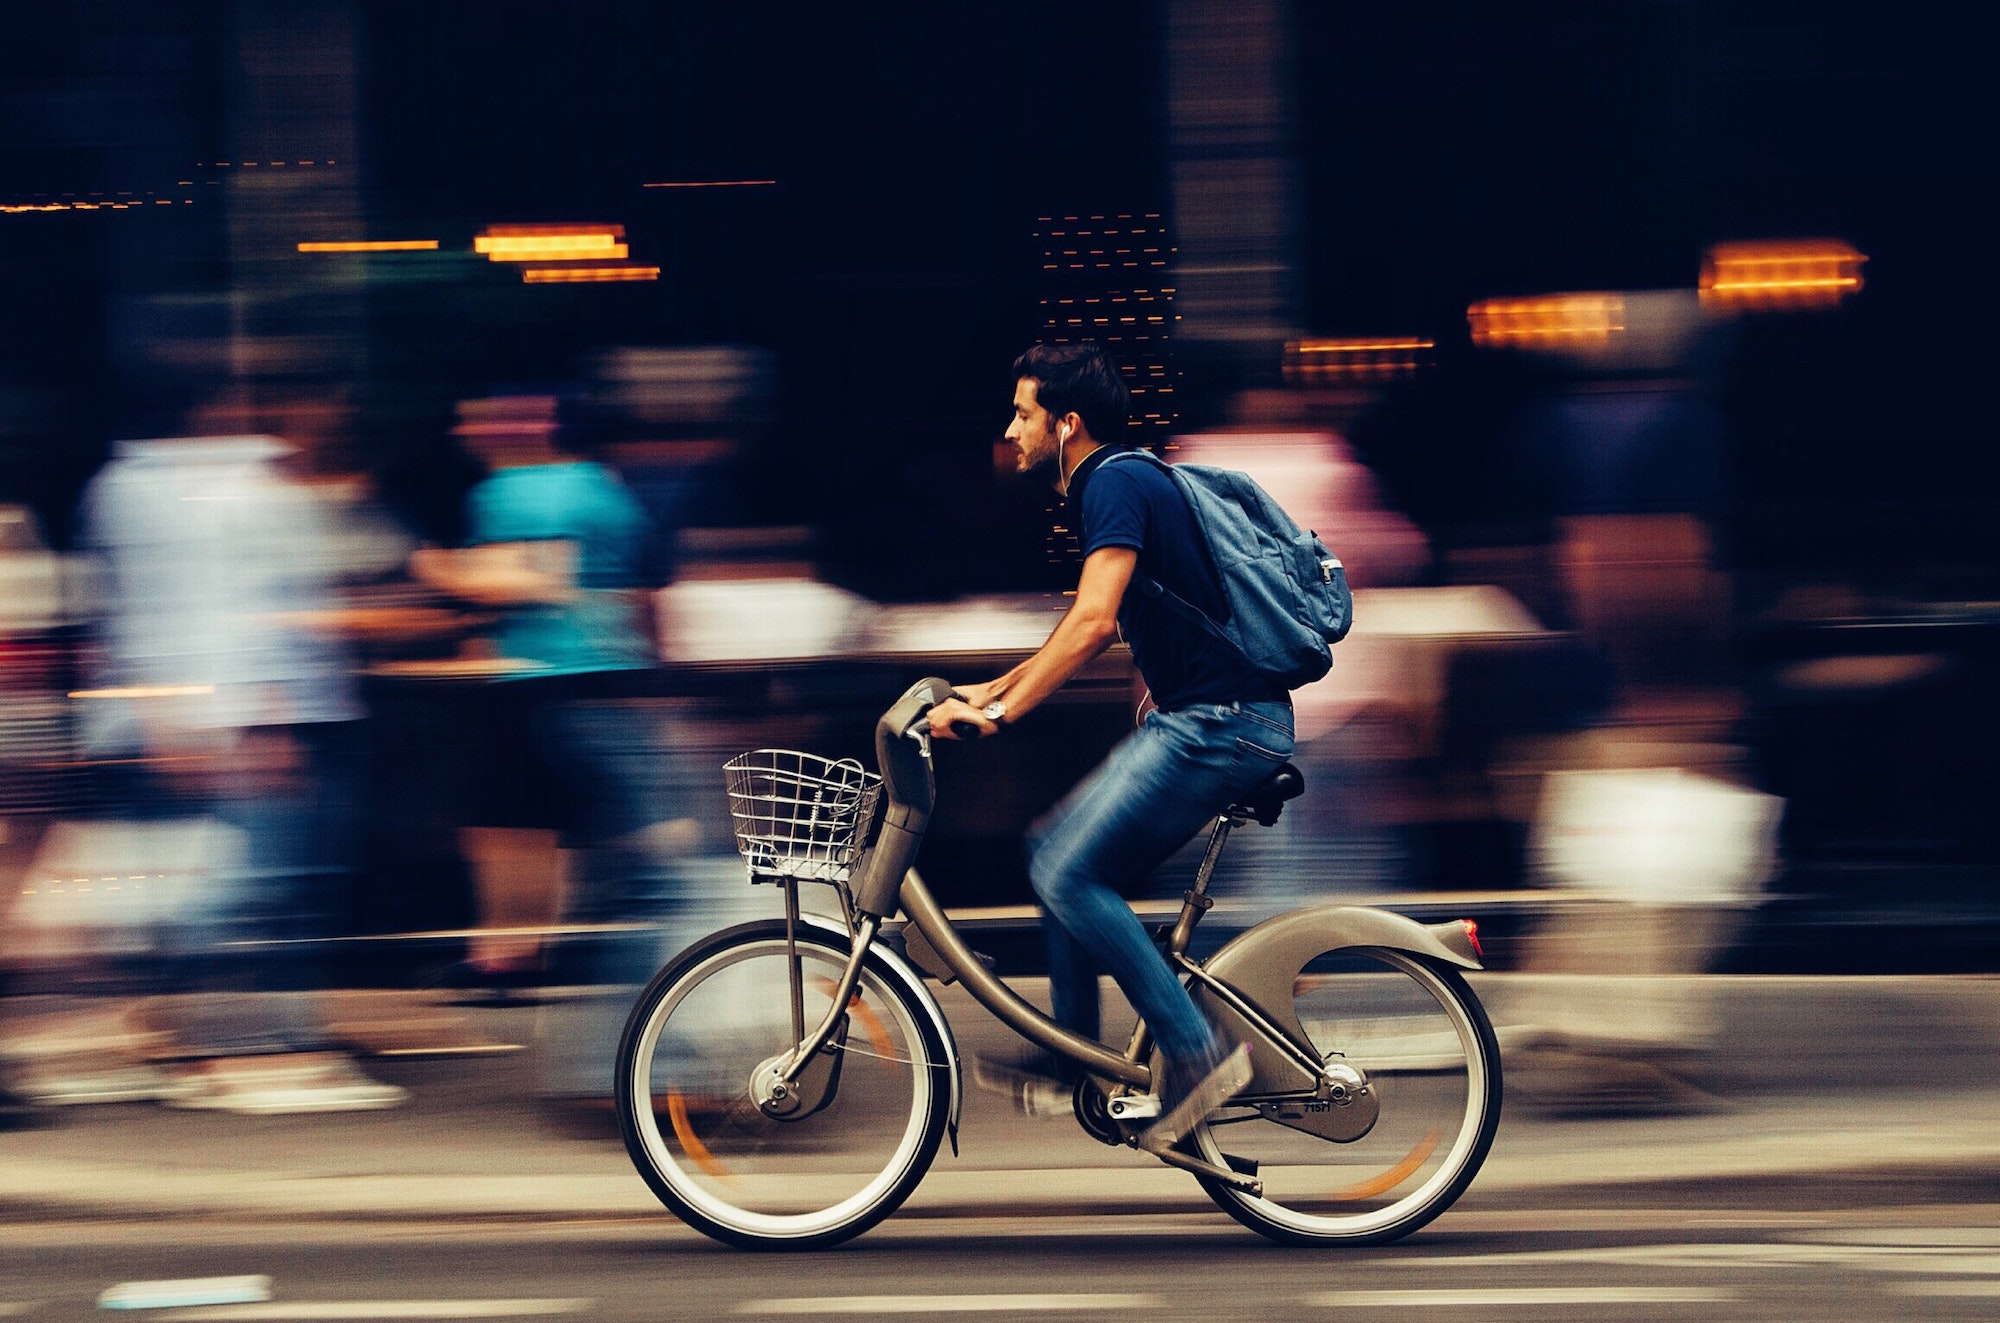 Cycle Helmet | How to Ride an Electric Bicycle Uphill | Fitness | Elle Blonde Luxury Lifestyle Destination Blog